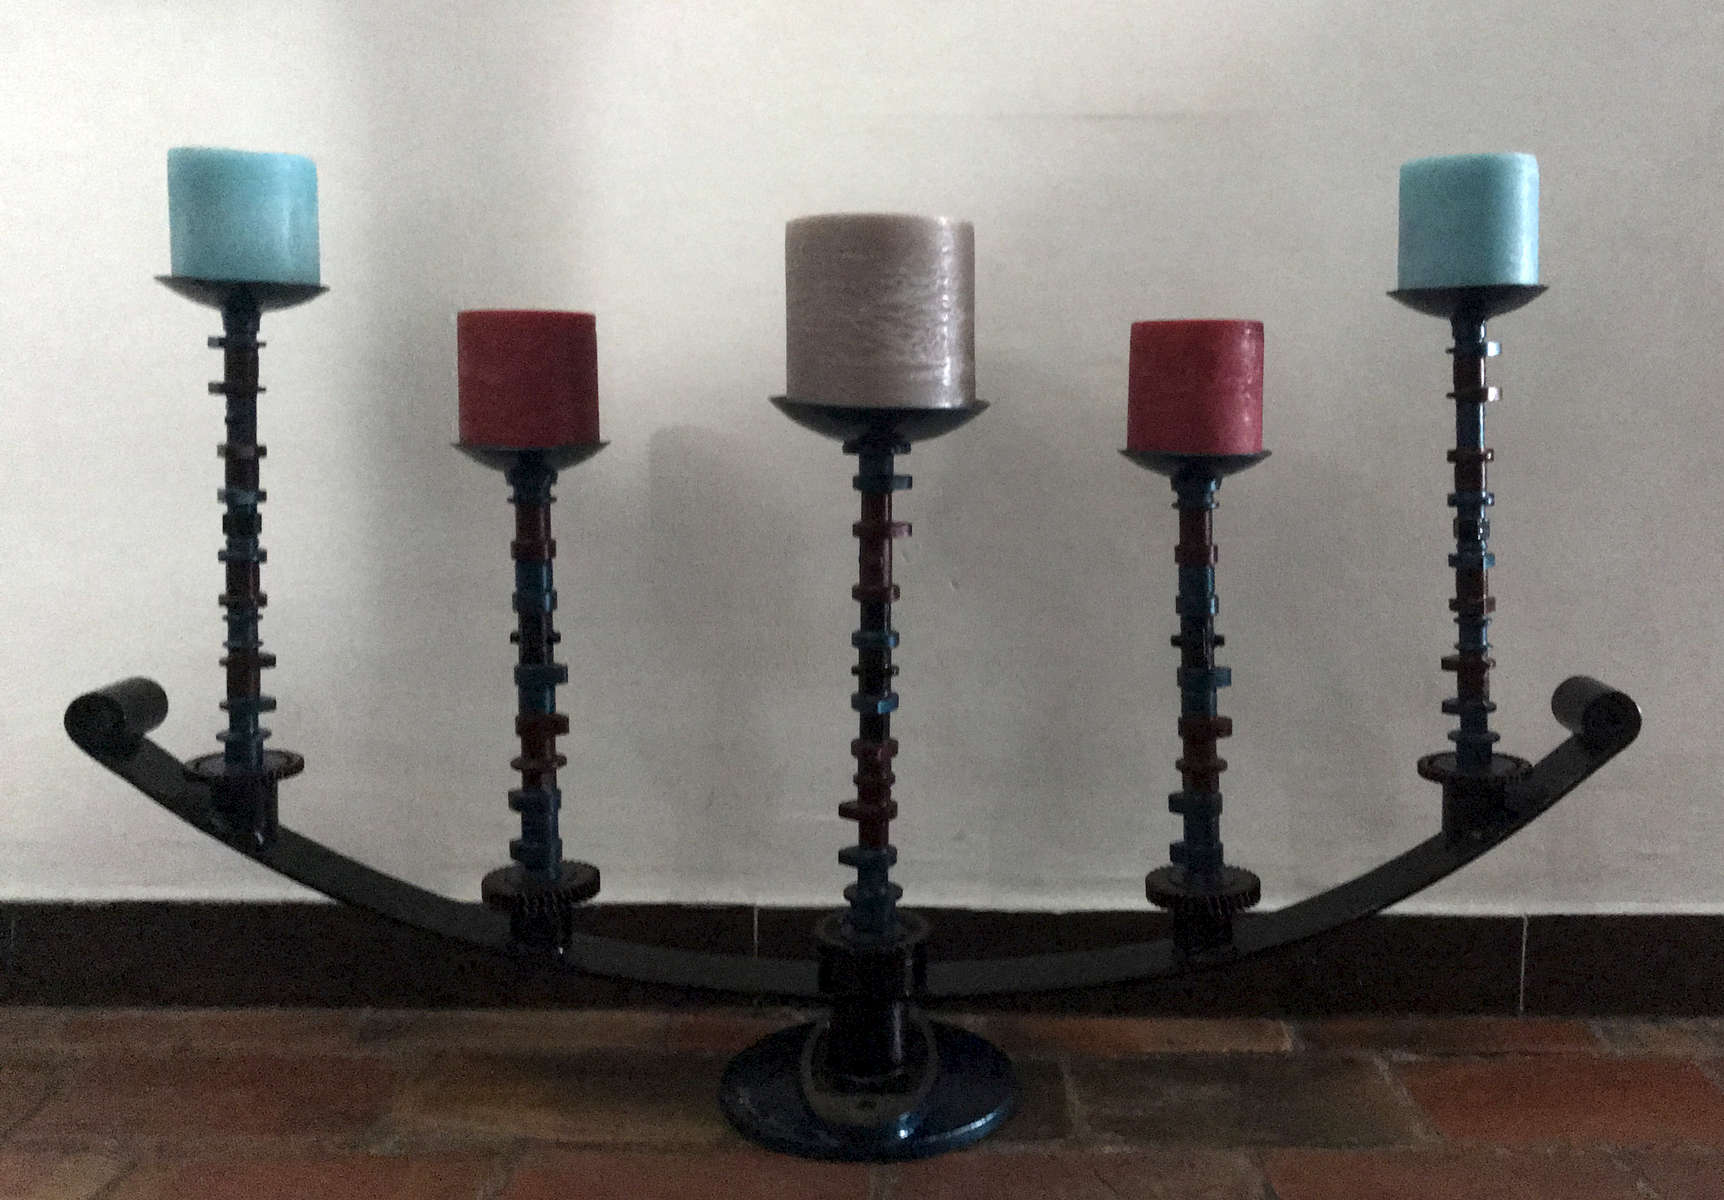 $1000all candlesticks made to order w/ 5 ($1000), 3 ($500) or 1 ($200) sticks